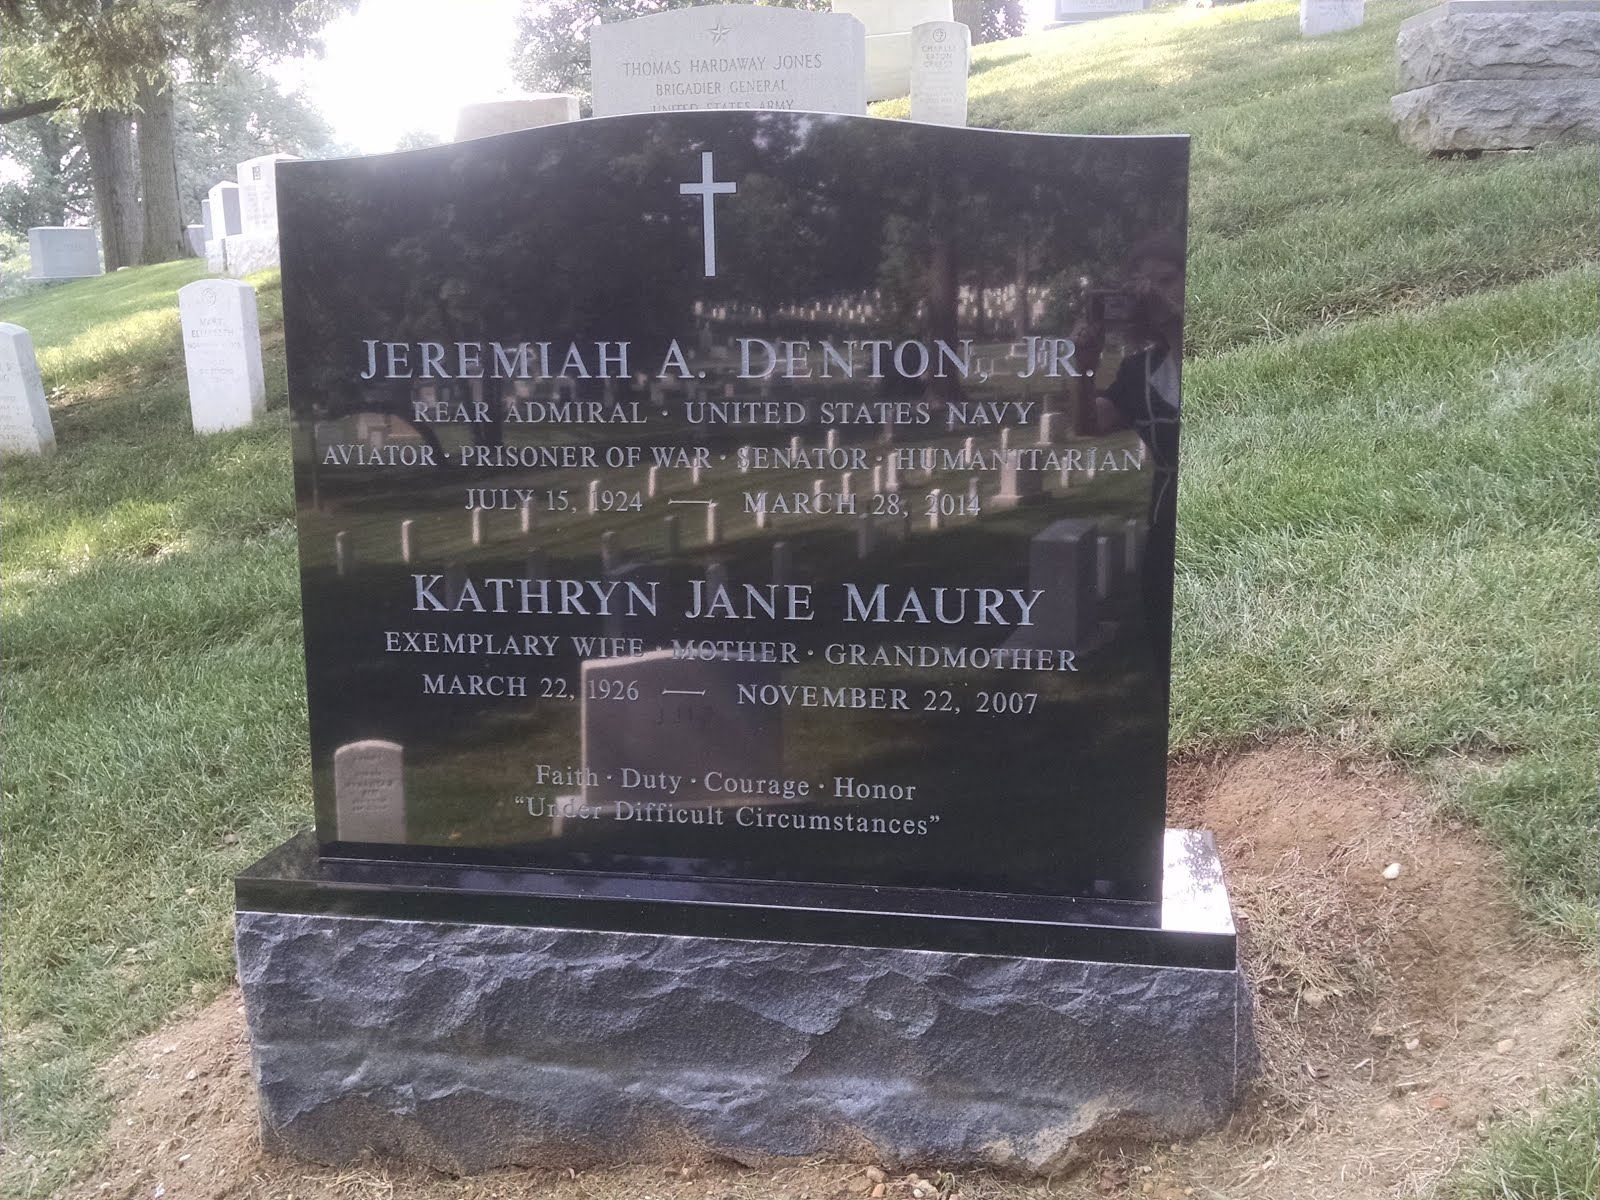 Michael made sure we got to see our parents' new gravestone.